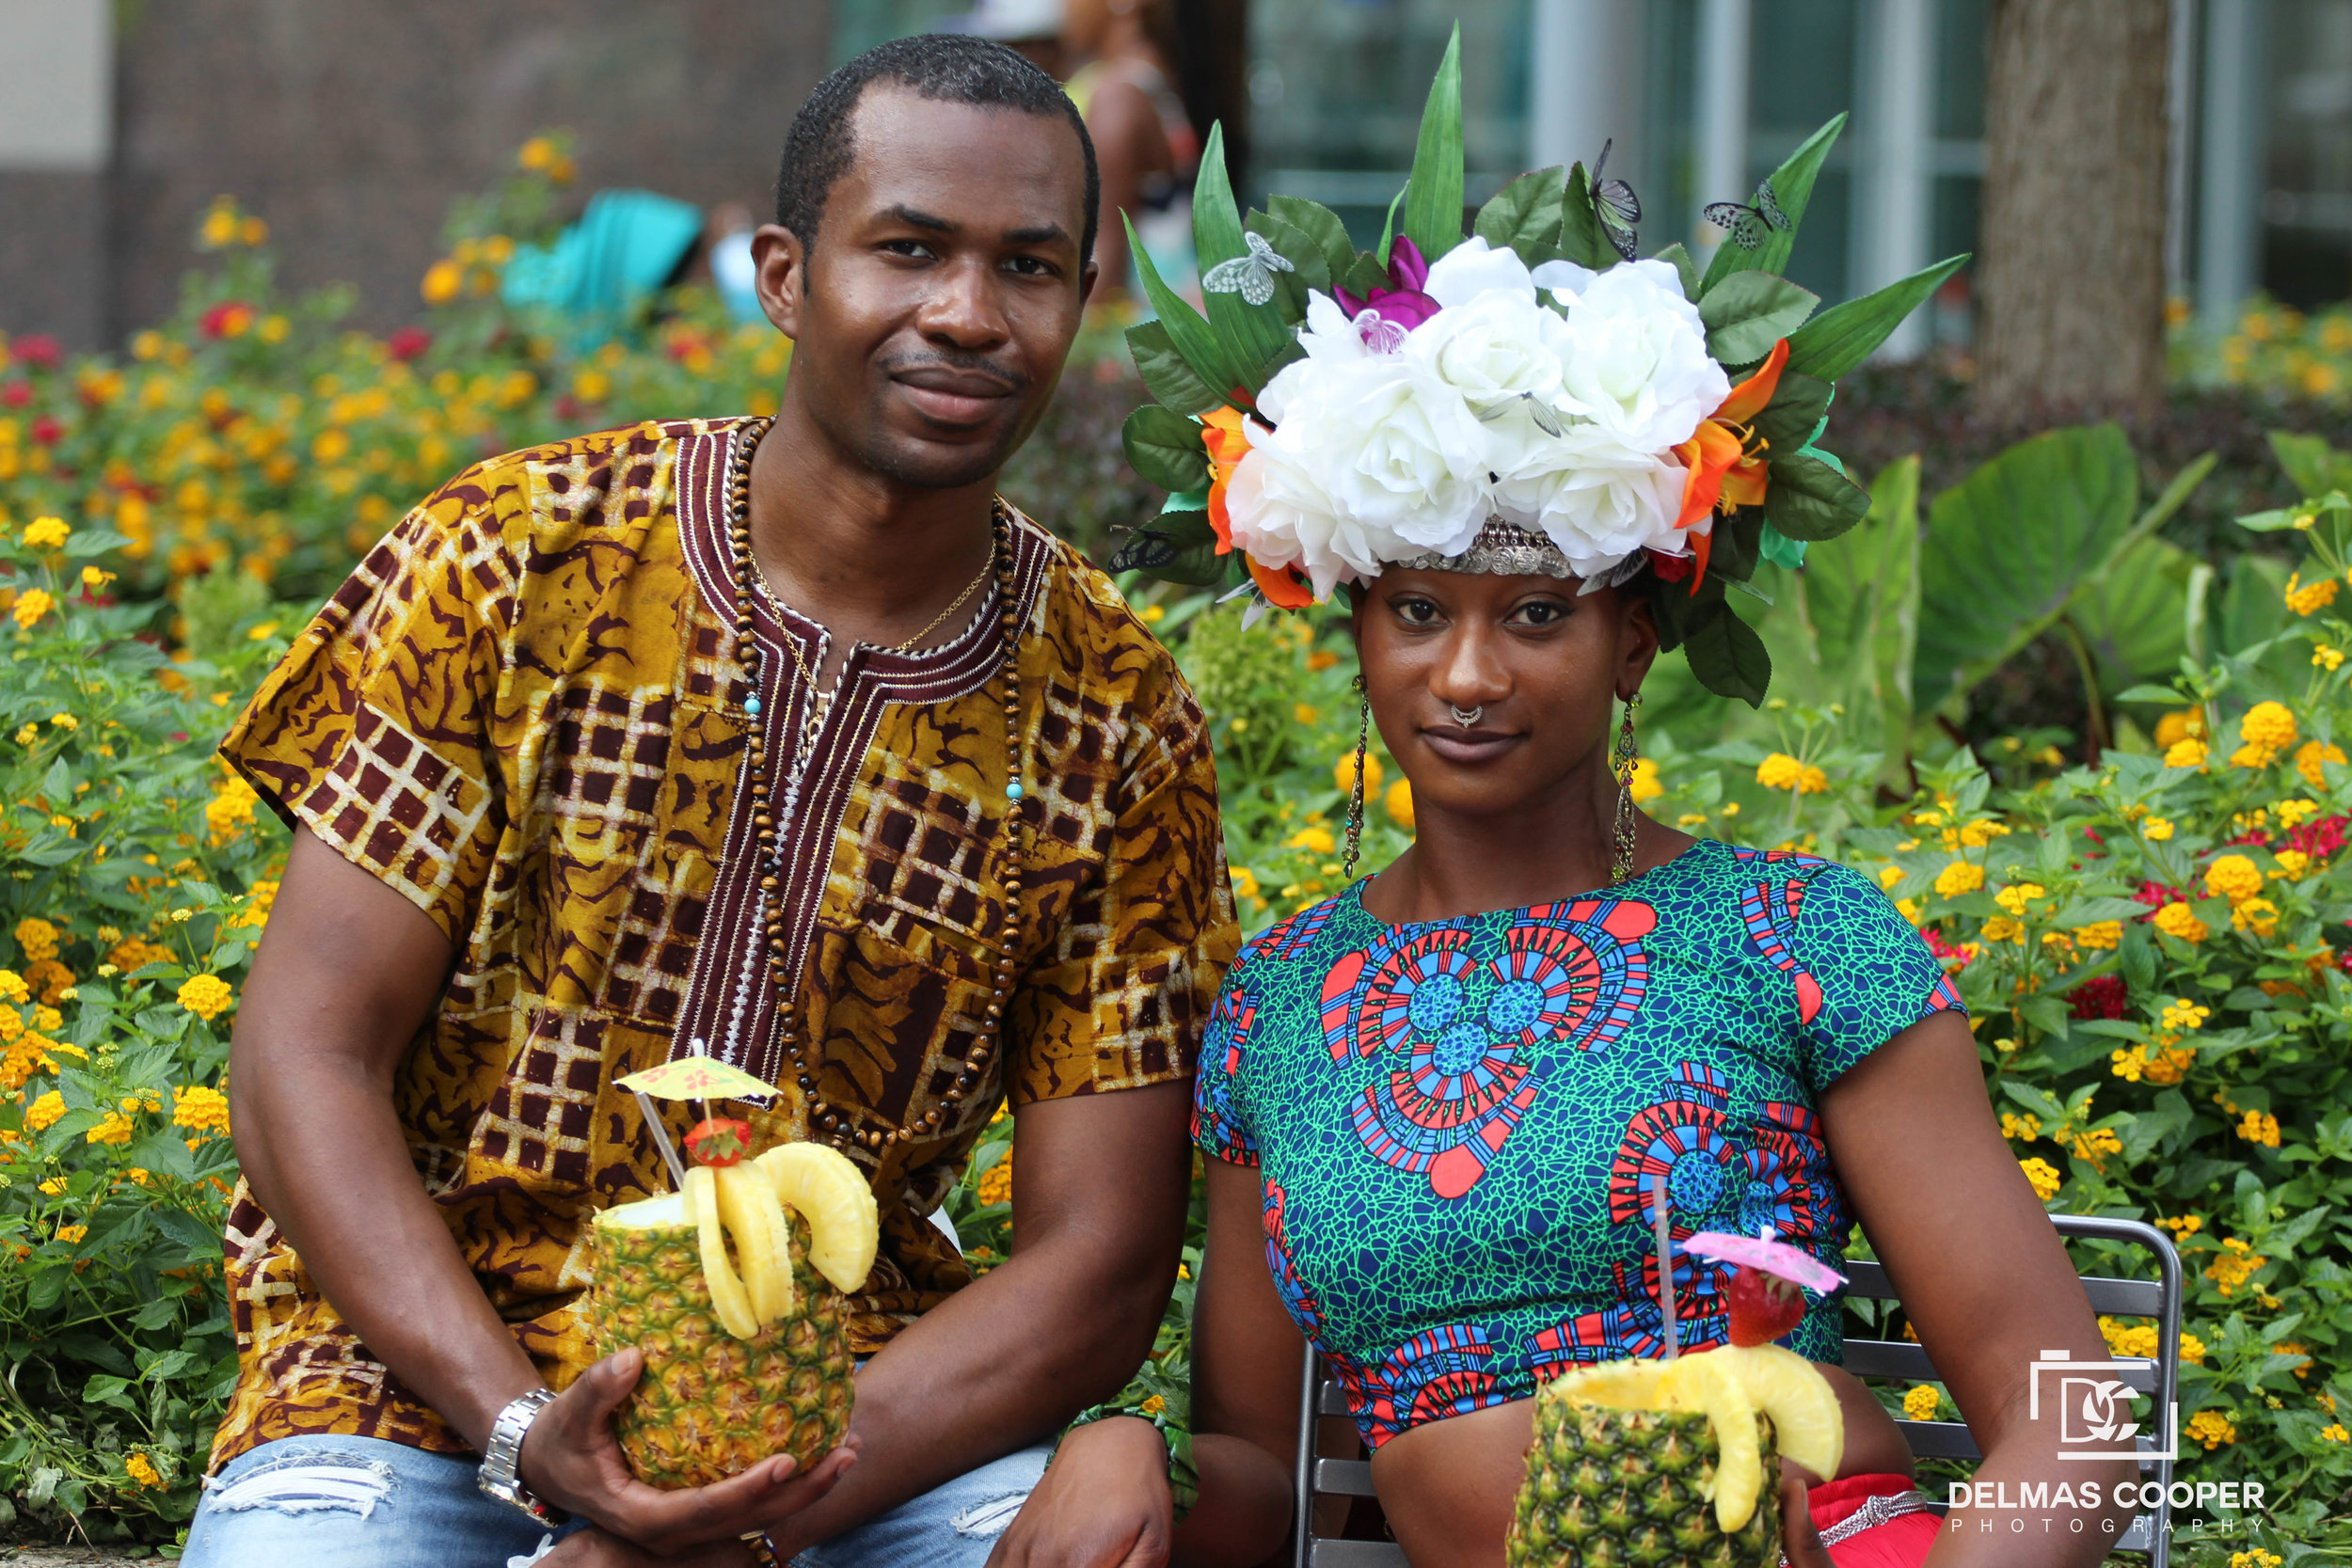 Man and woman in African print clothing with pineapple drinks